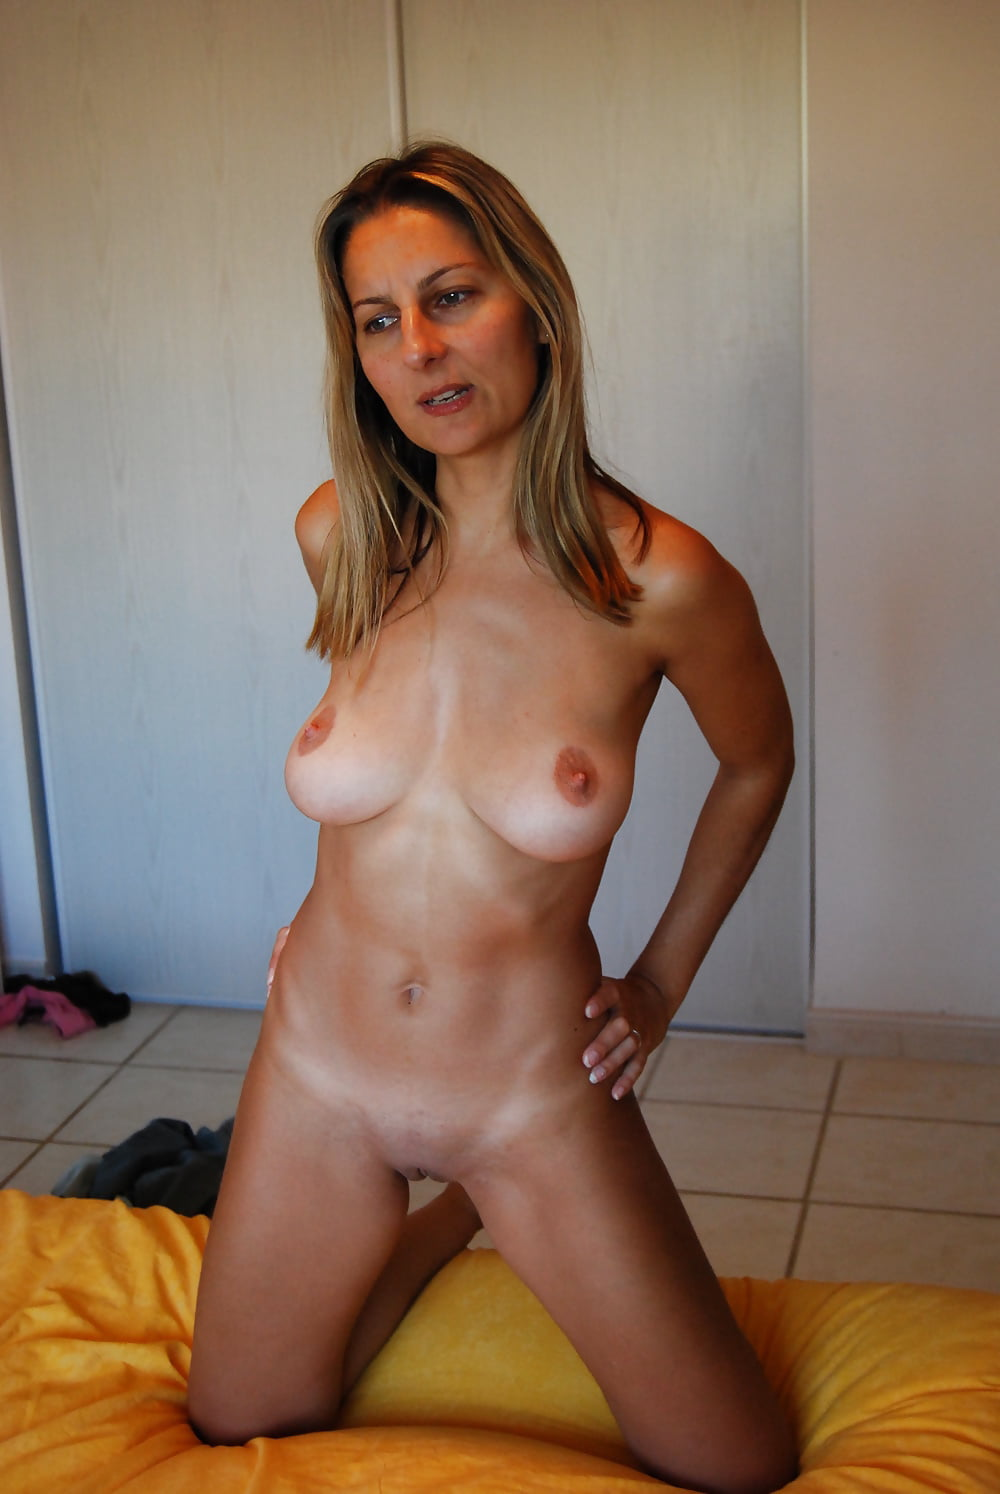 amature-nude-spanish-woman-good-girls-having-sex